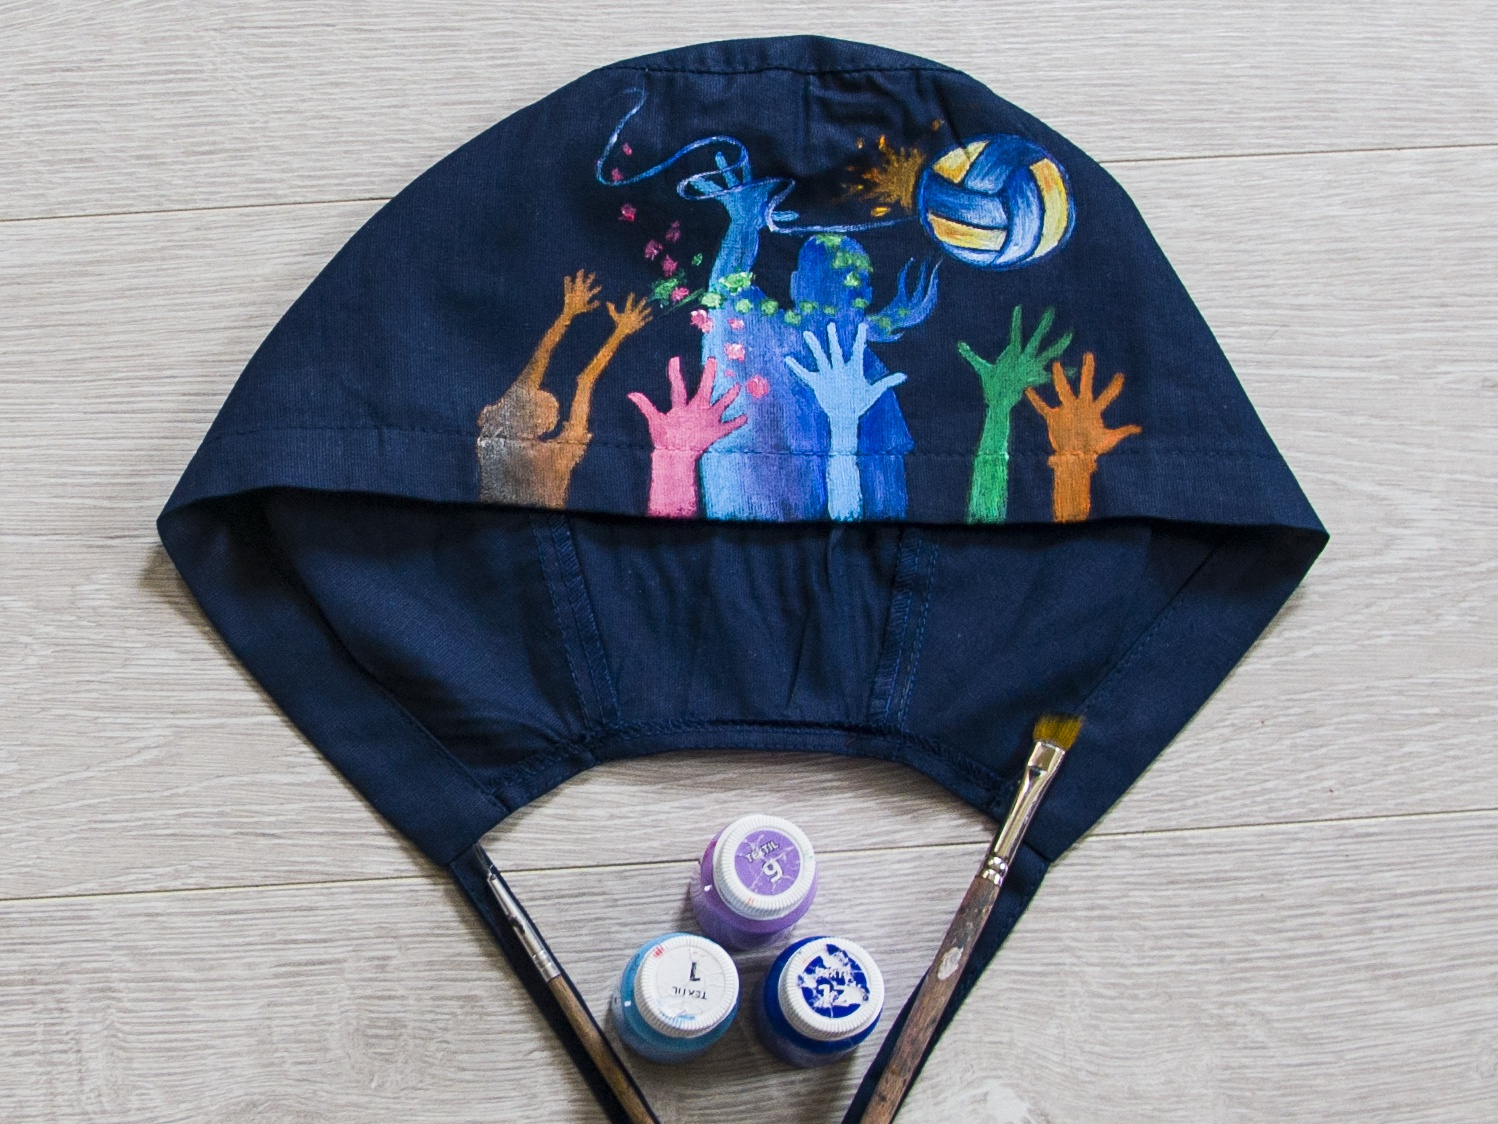 Hand-painted hat for a doctor, who likes sport sport picture fantasy paint drawing hand-painted apparel style wear handmade fashion painting design